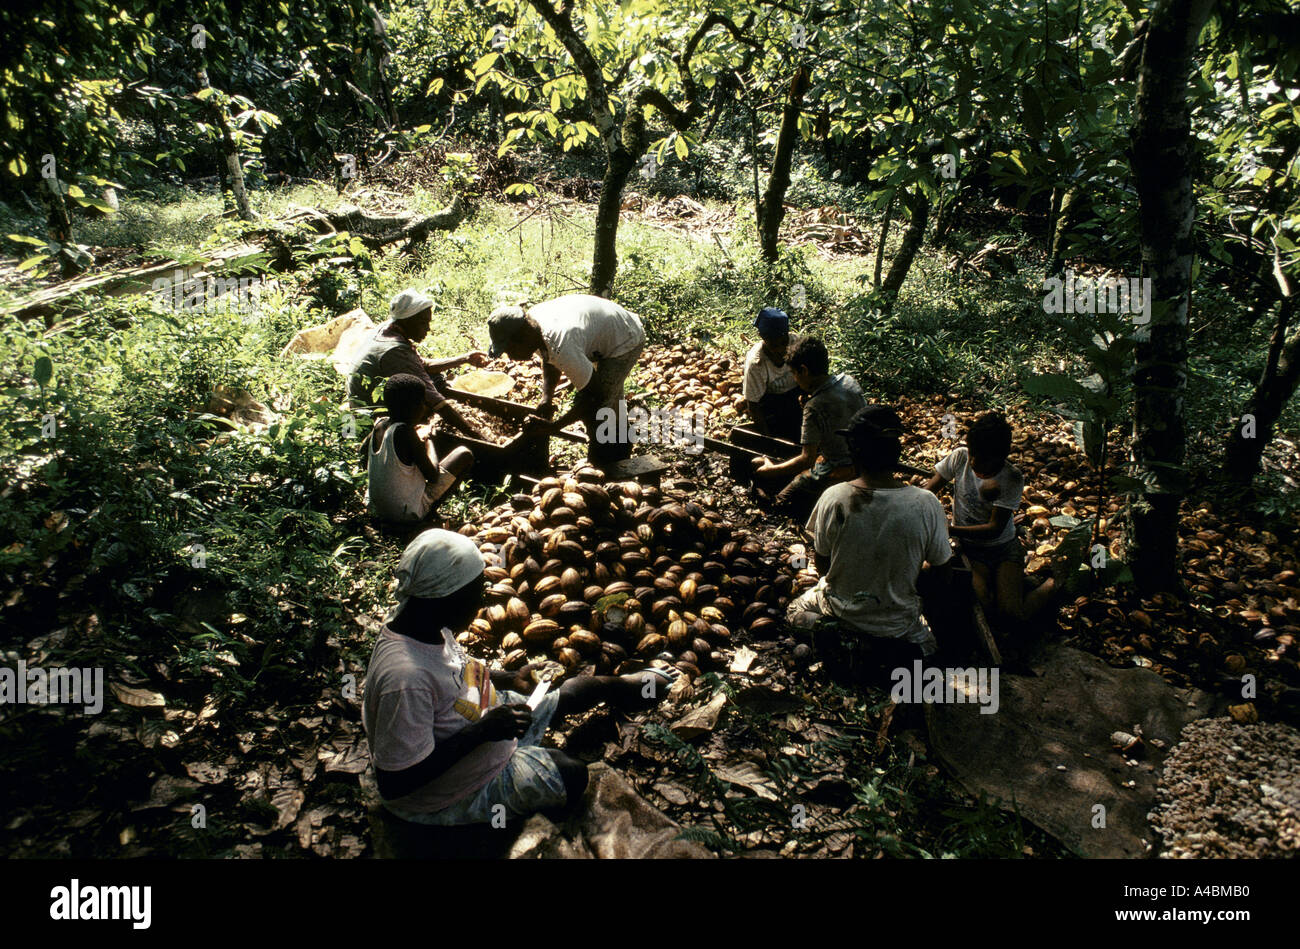 Eight workers but only two wages. With new systems of piecework  cacao workers bring their families  and earn what previously one man earned alone. Bahia, july 1991 - Stock Image